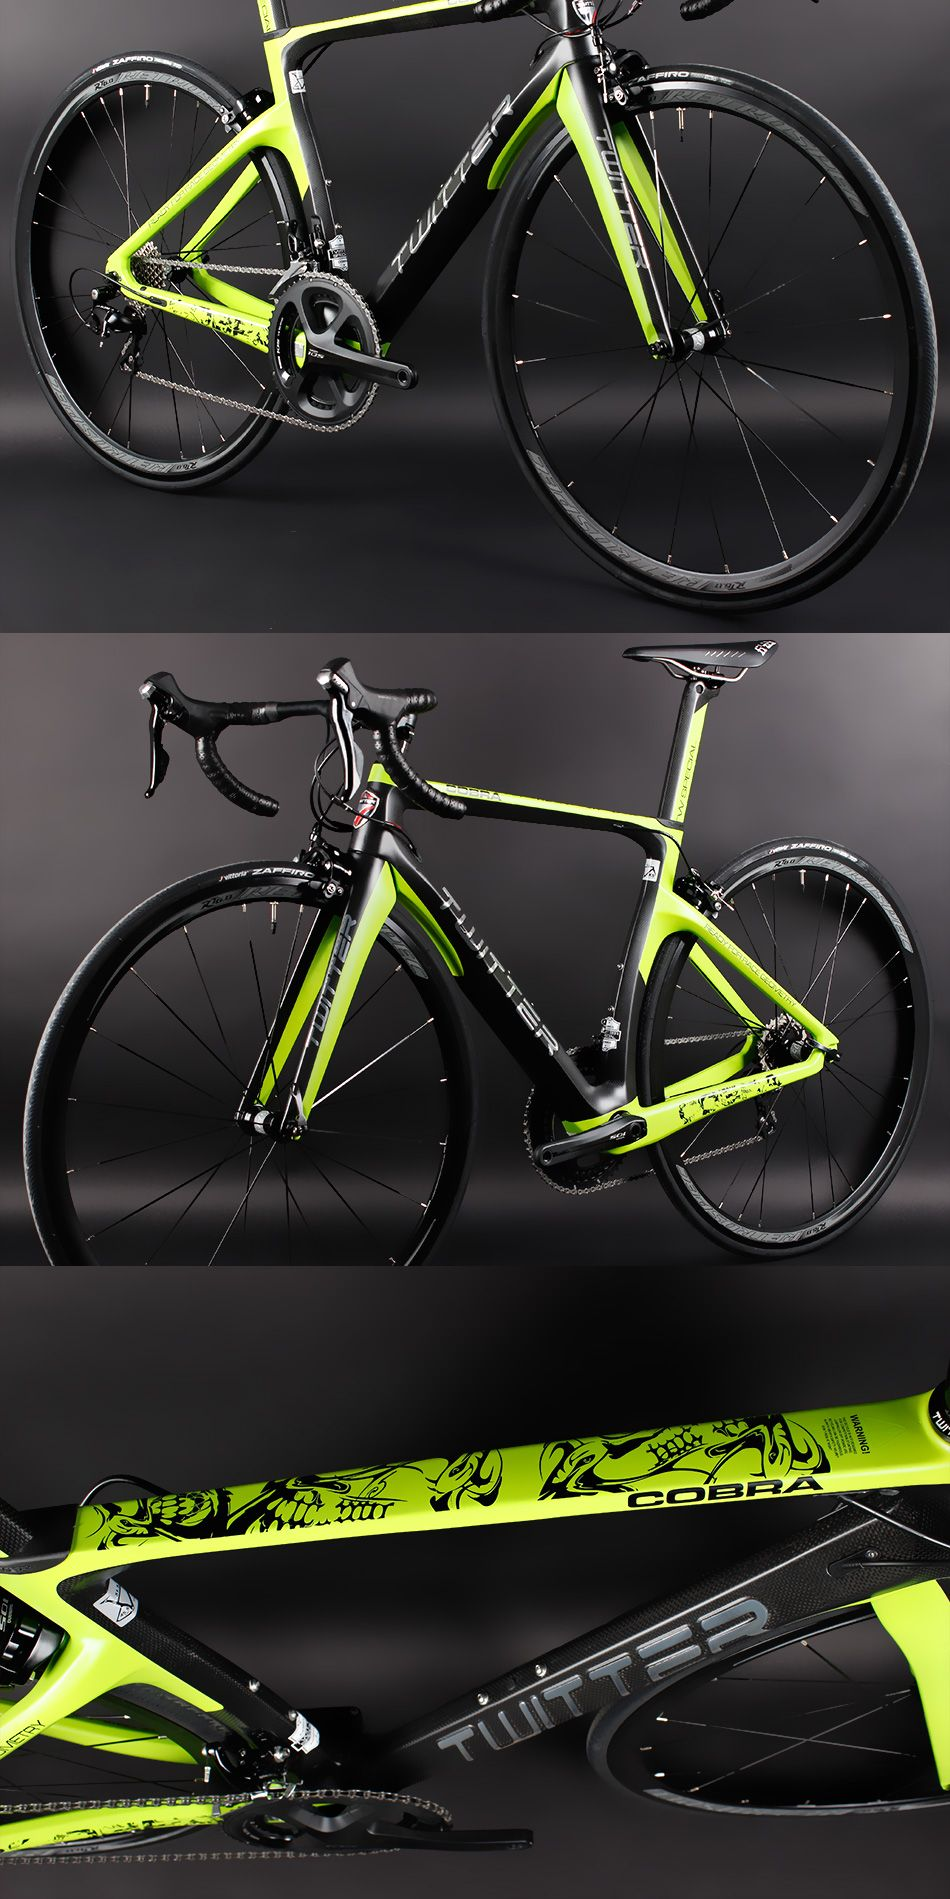 700c Cobra Carbon Road Bike With Shimano 105 5800 22s And Shimano 5800 C Style Break Twitterbikes Bikefactoryoutlet Bikefa Carbon Road Bike Road Bike Bike